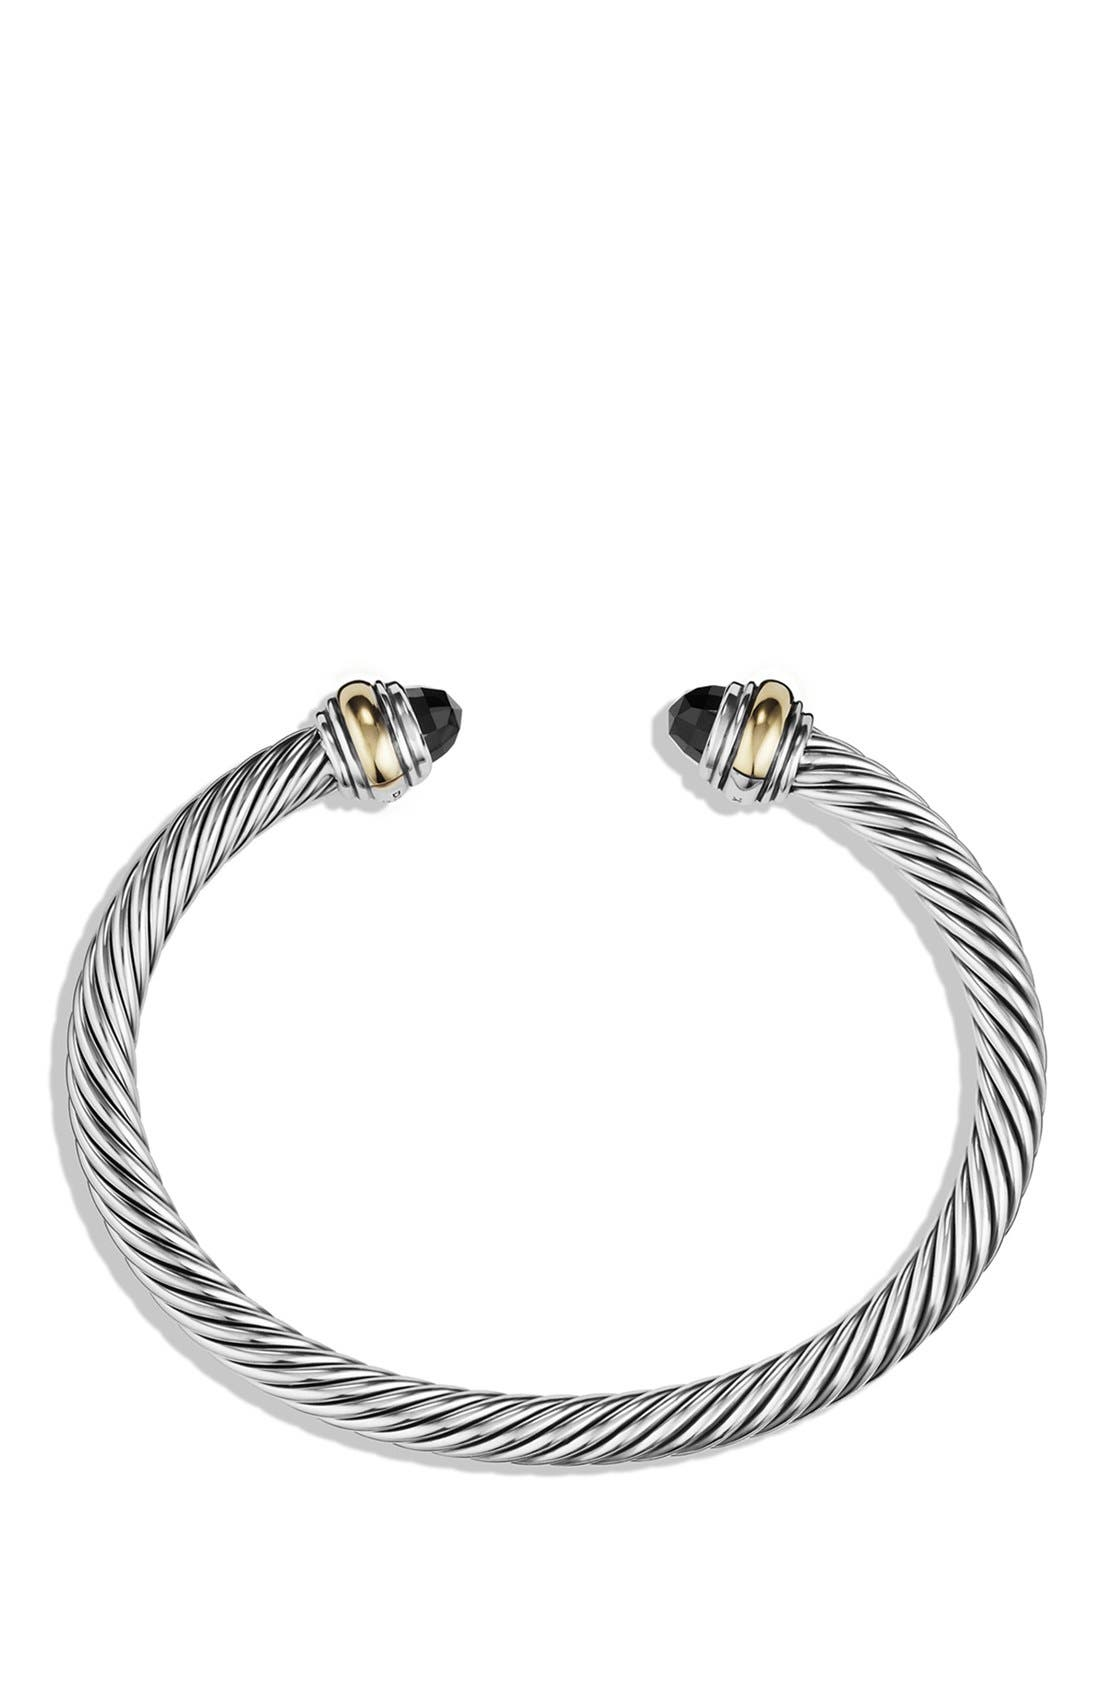 DAVID YURMAN, Cable Classics Bracelet with Semiprecious Stones & 14K Gold Accent, 5mm, Alternate thumbnail 3, color, BLACK ONYX